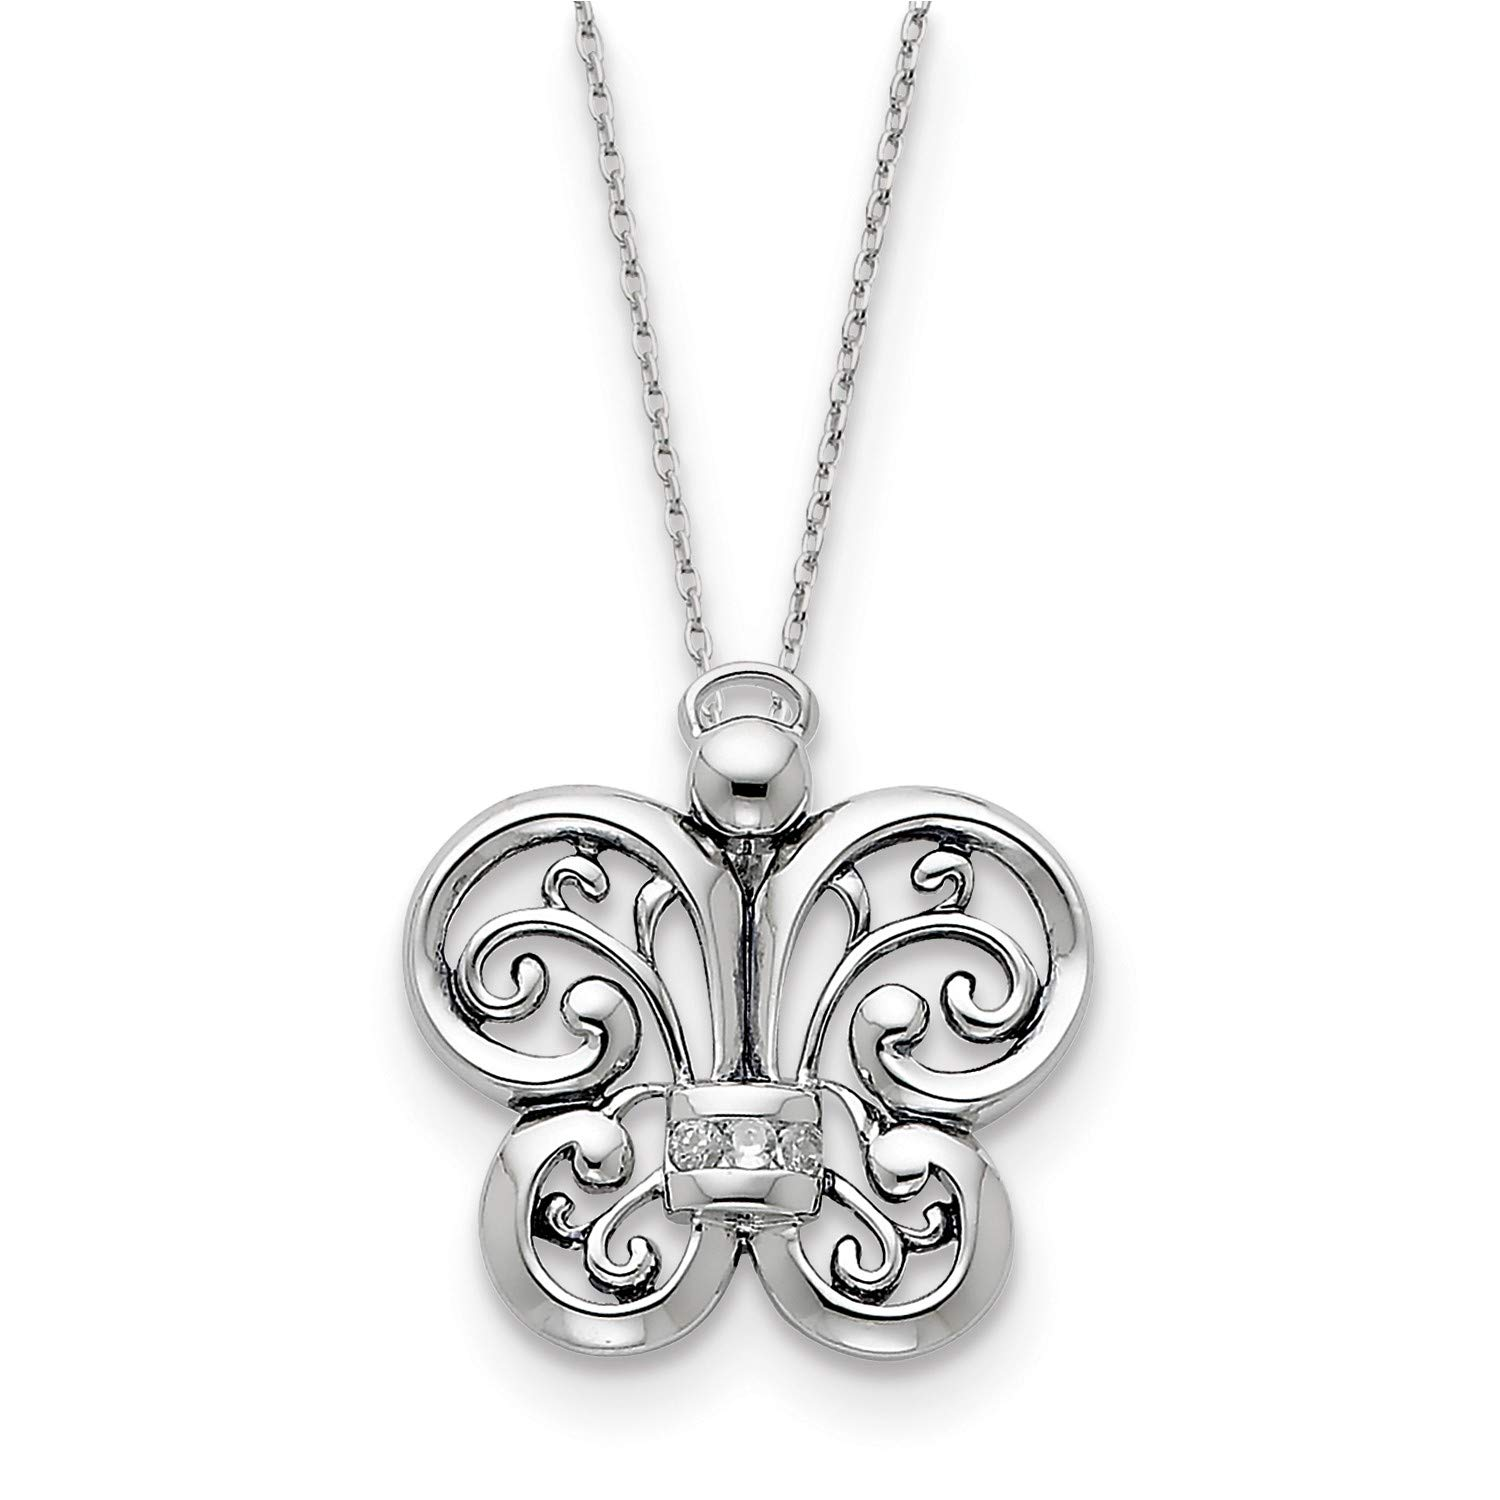 18 CZ Angel of Courage Pendant Necklace 25x25MM Antiqued Rhodium-Plated Sterling Silver